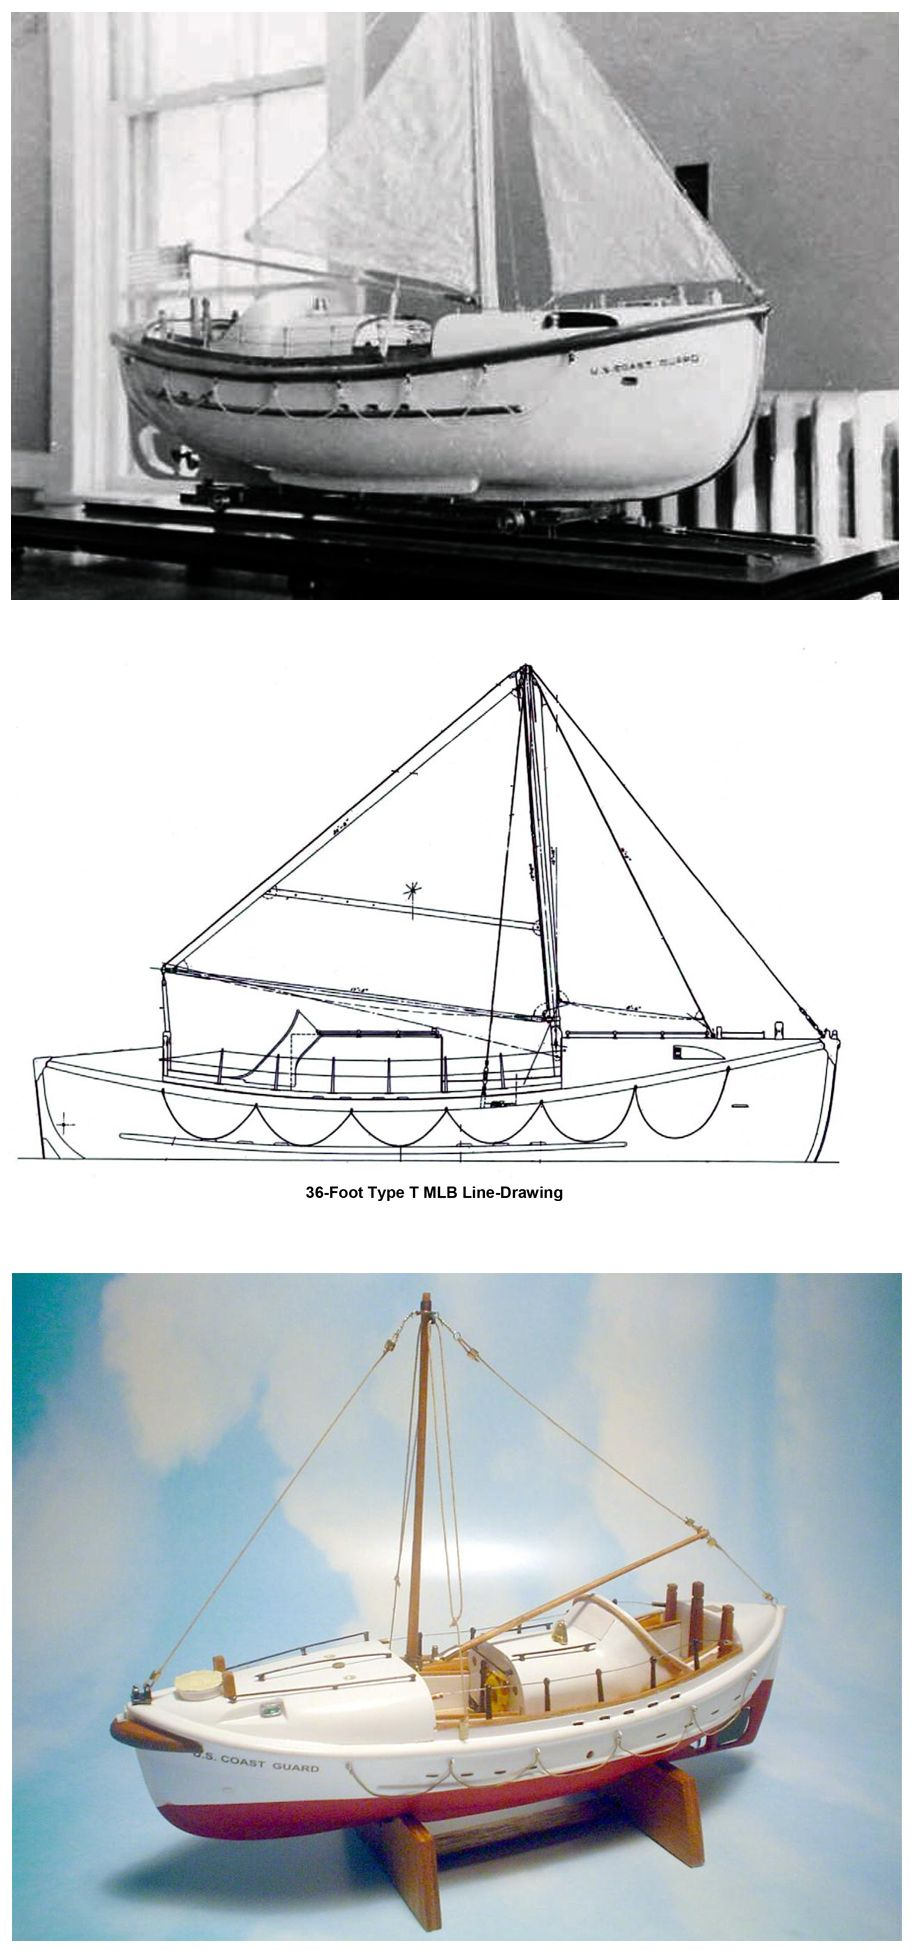 Scale Models And A Line Drawing Of A Us Coast Guard Type T 36 Ft